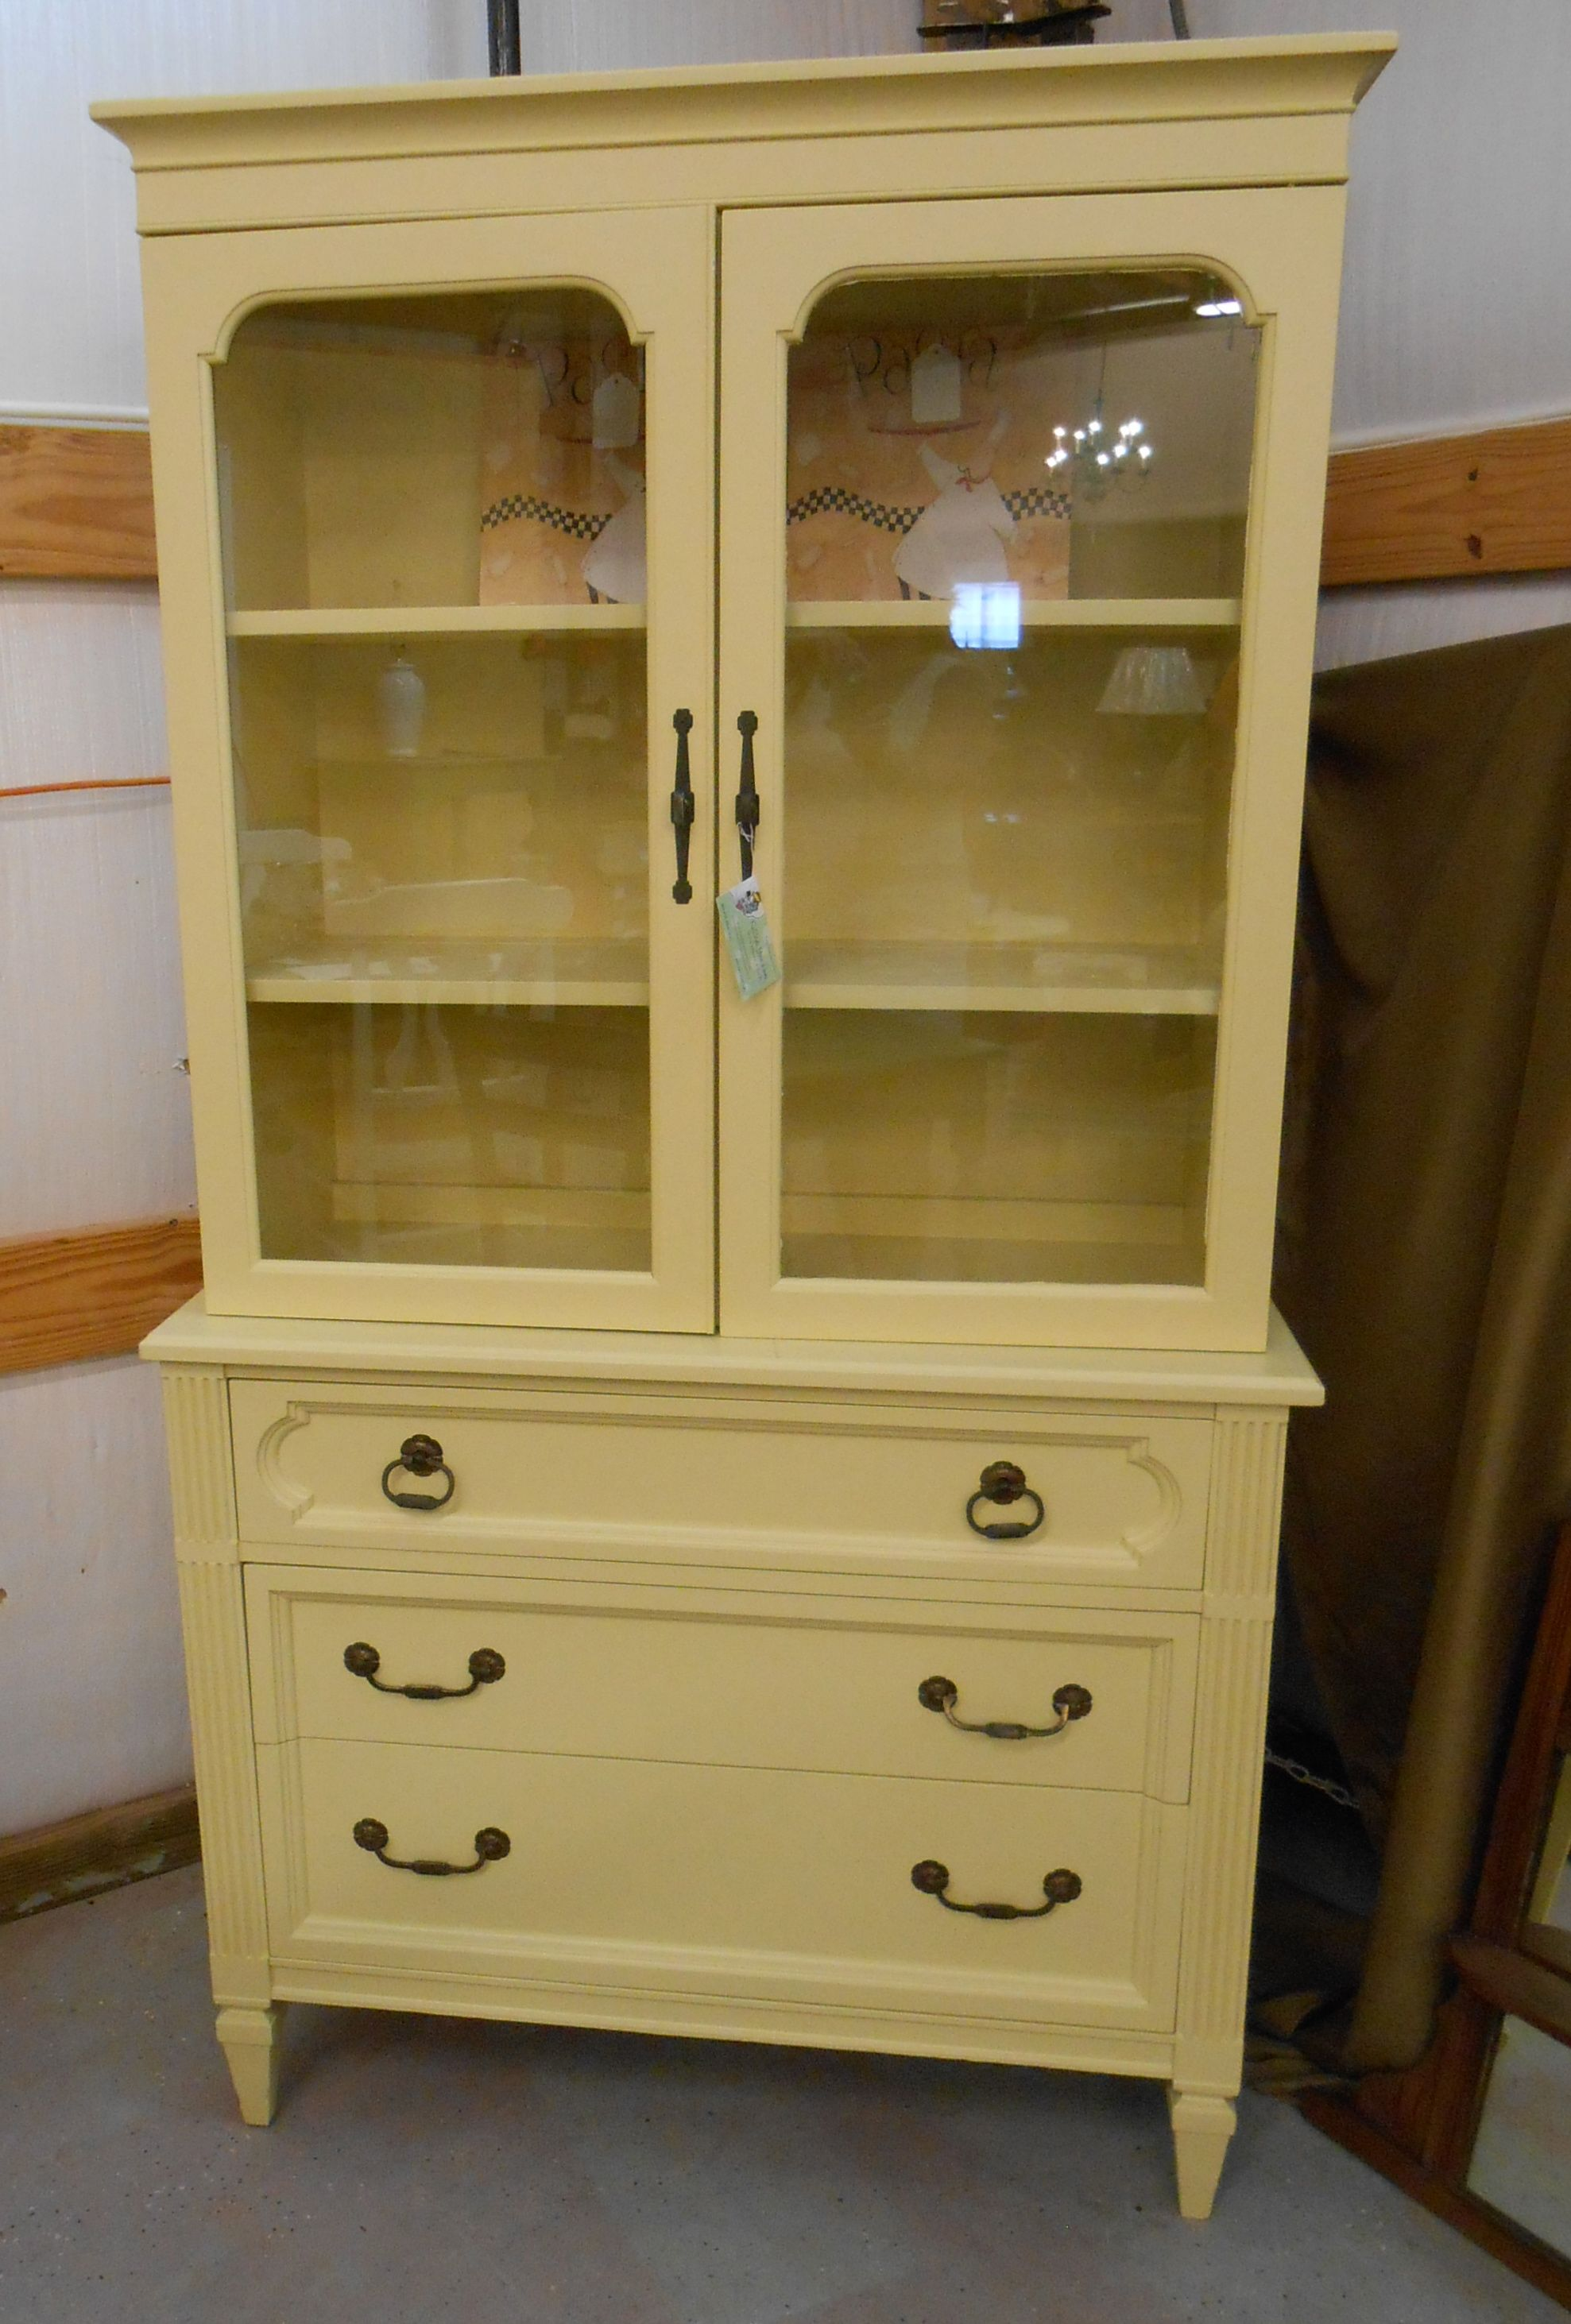 Vintage China Hutch Cabinet Kept Original Hardware Painted With SW June Day